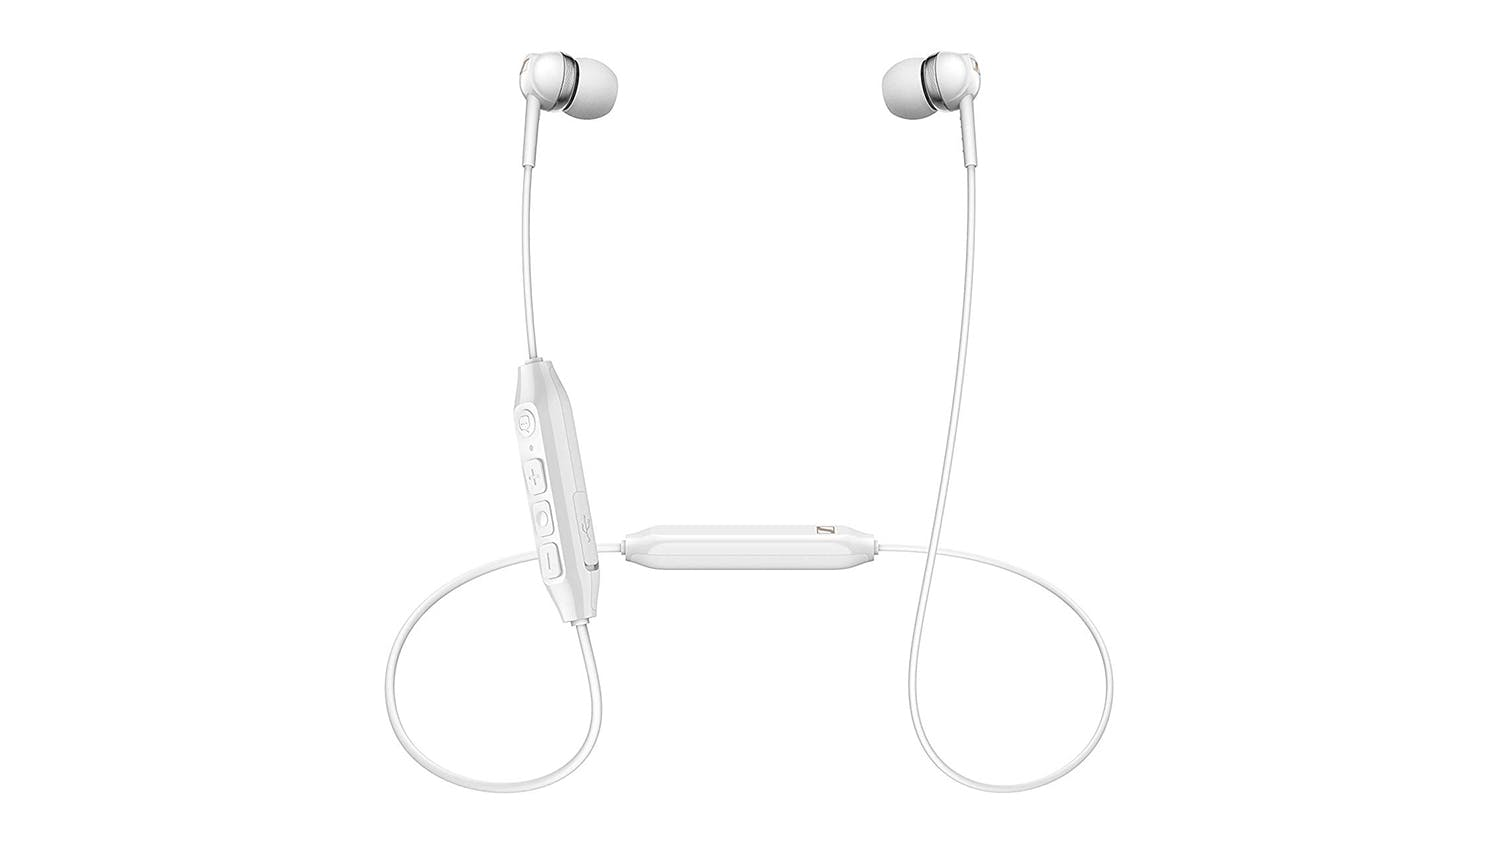 Sennheiser CX350 Wireless Bluetooth In-Ear Headphones - White